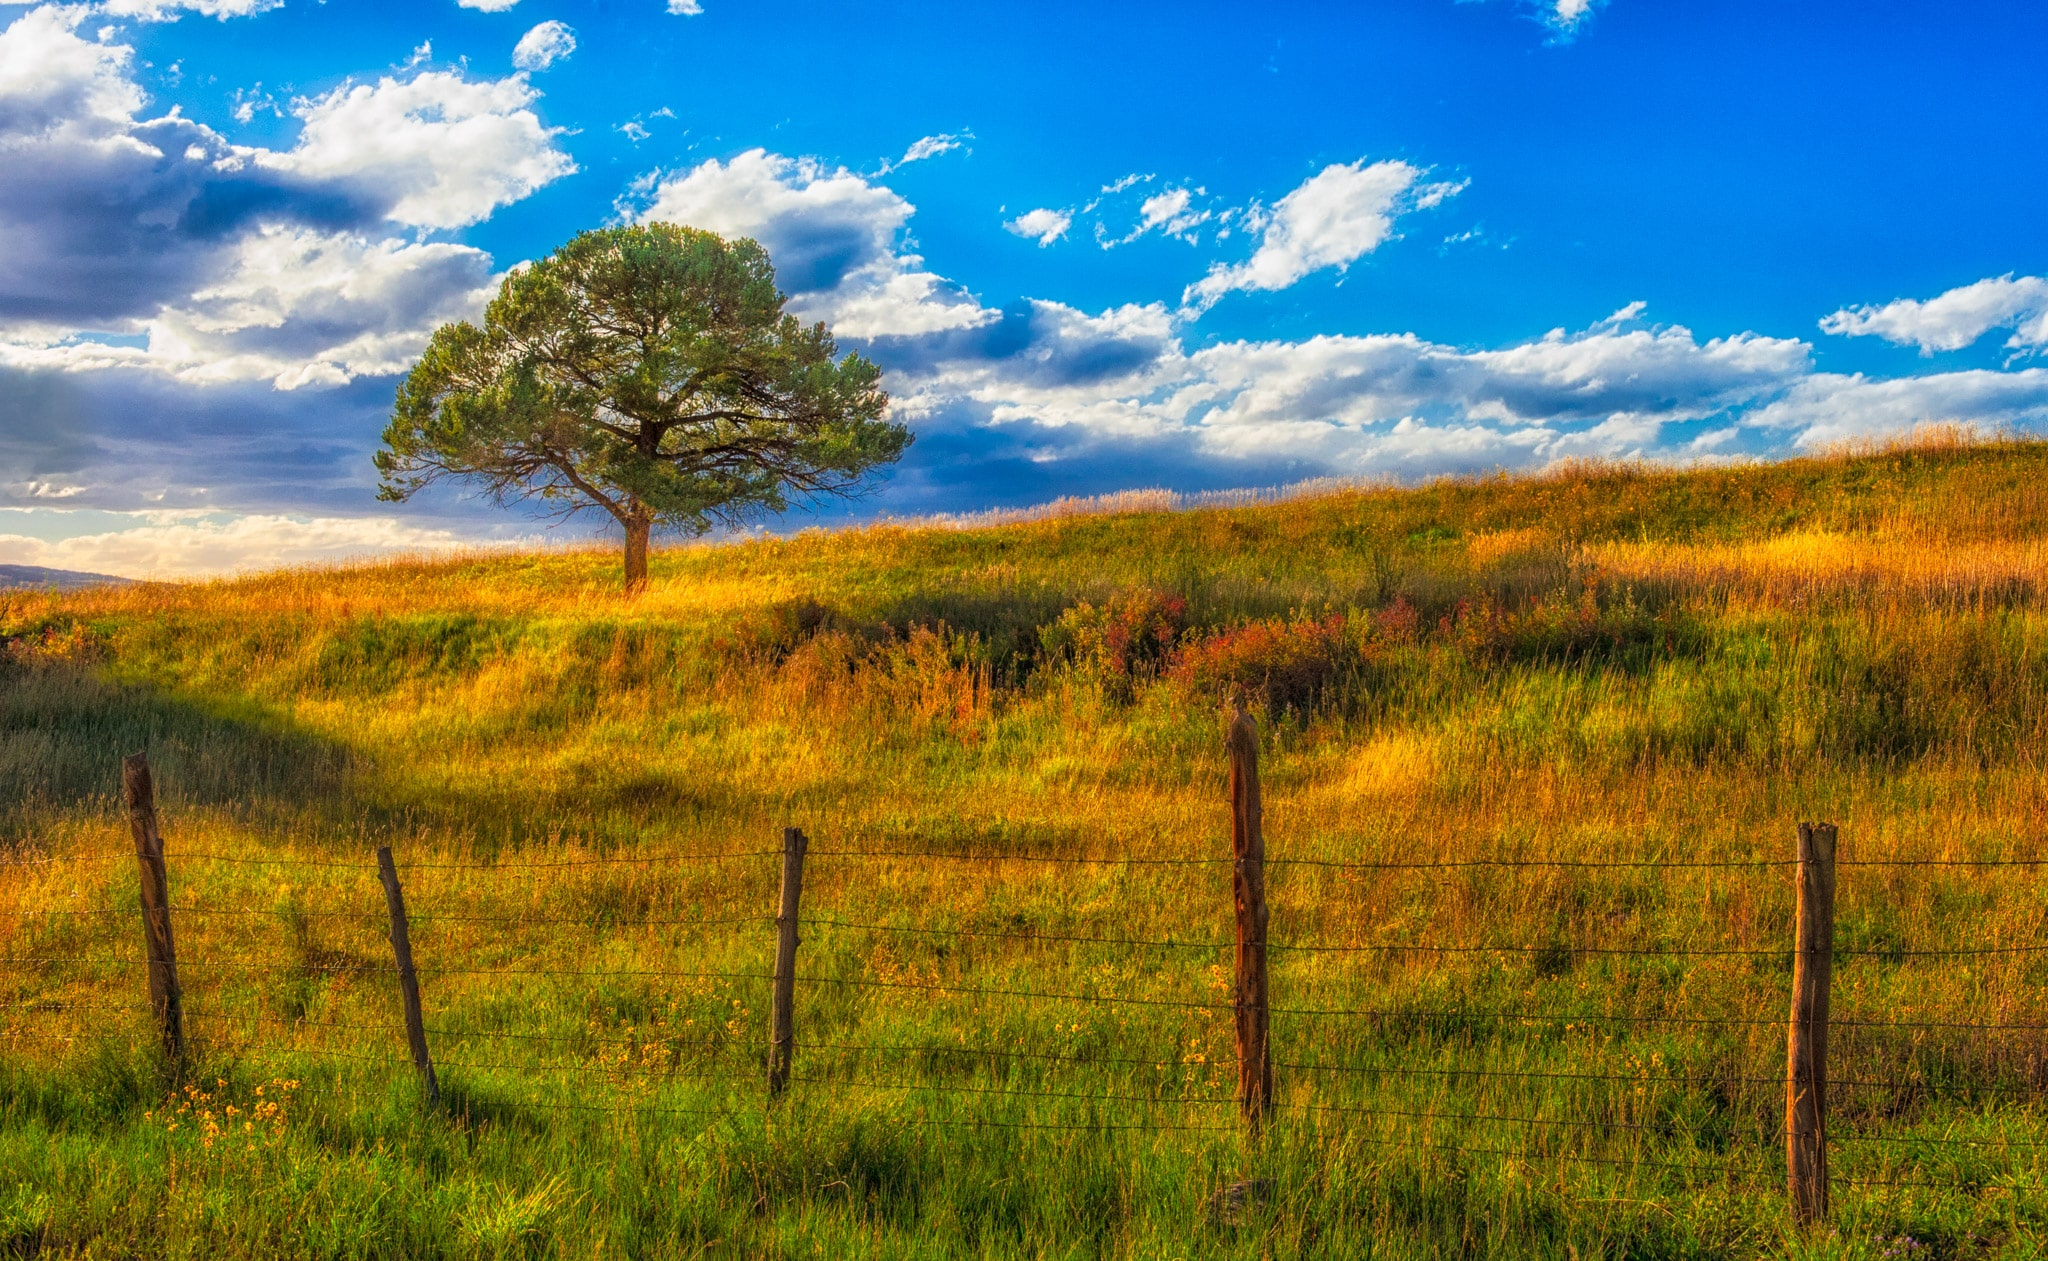 A Lone Tree Stands In A Field Of Autumn Colored Grasses, Fenced In By A  Barb Wire Fence.